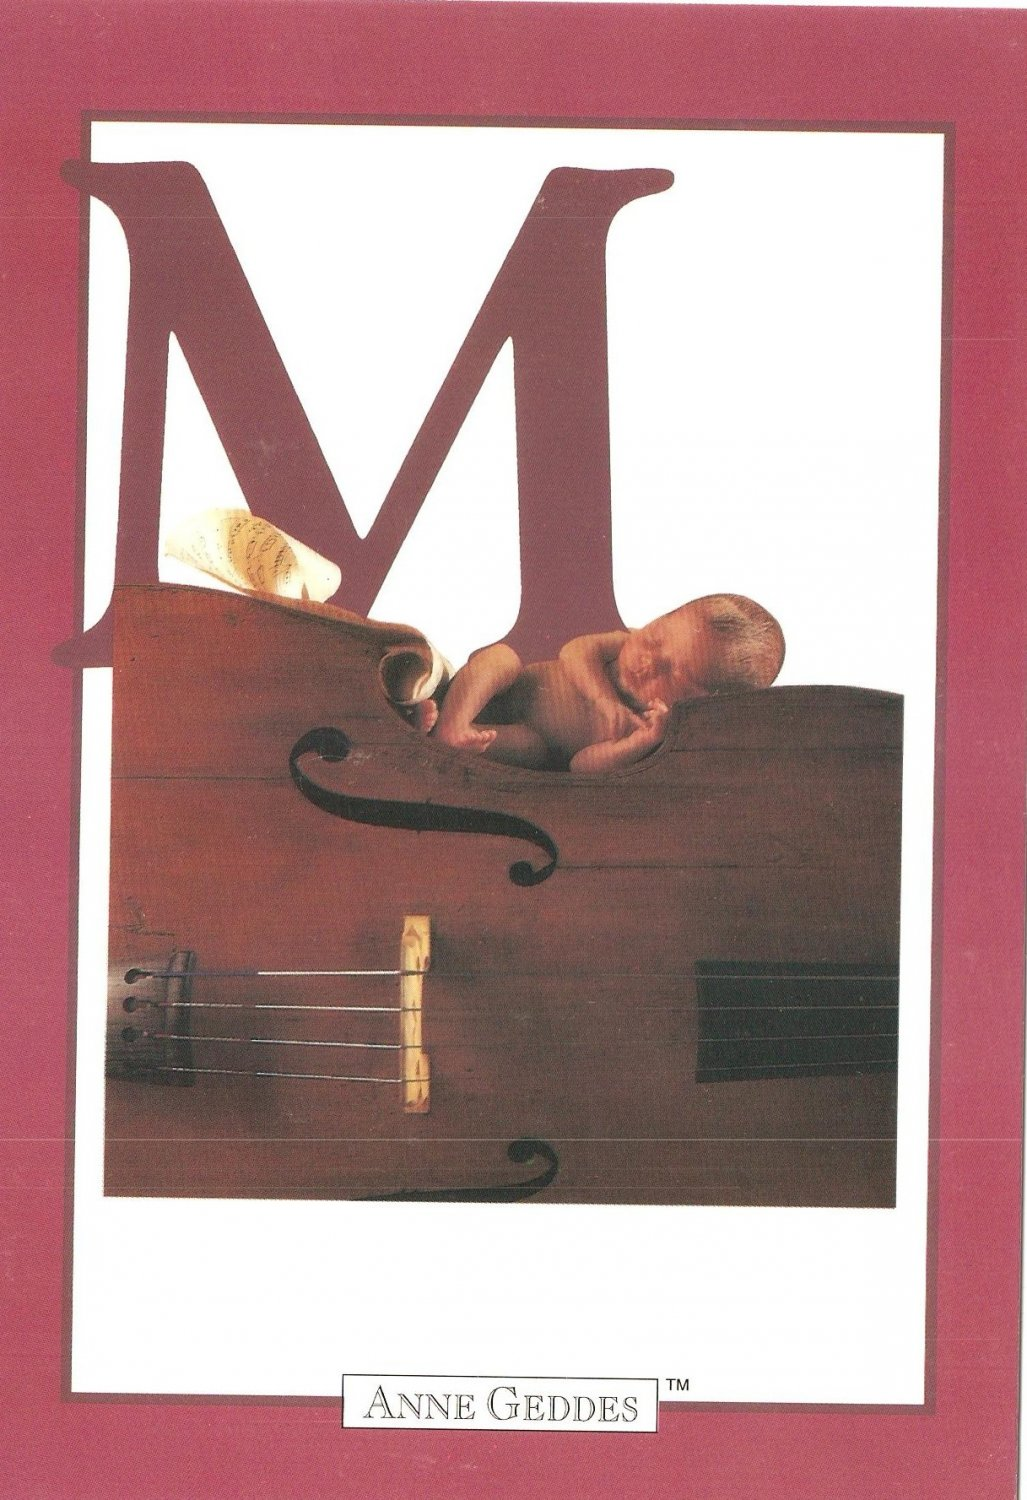 Anne Geddes Postcard 1995 605-066 M is for Music Baby 4x6